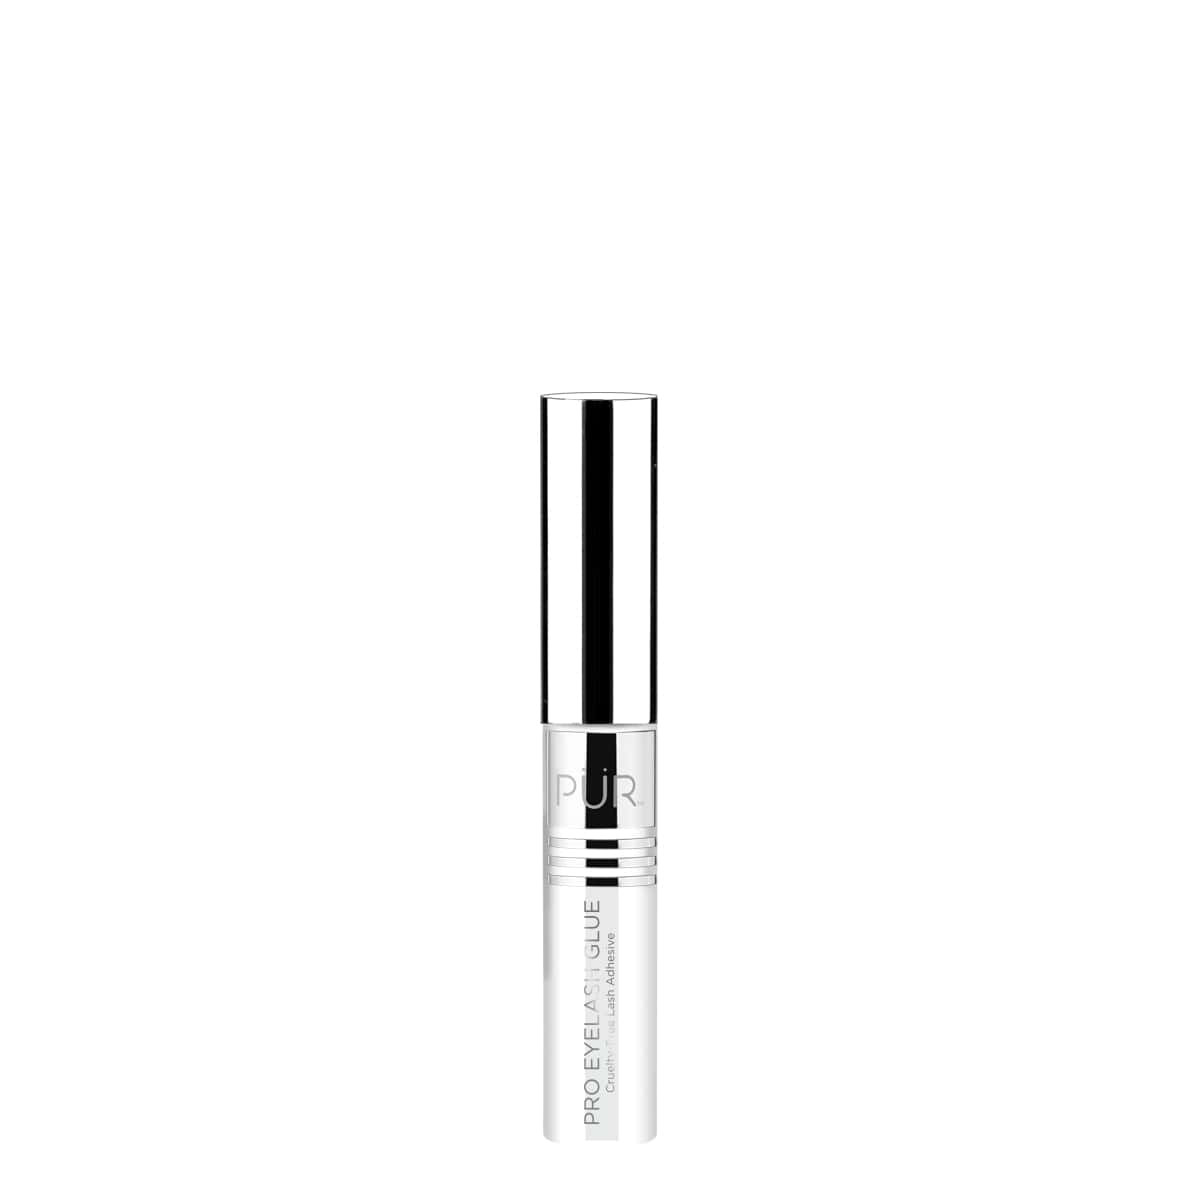 PRO Eyelash Glue│PÜR The Complexion Authority™